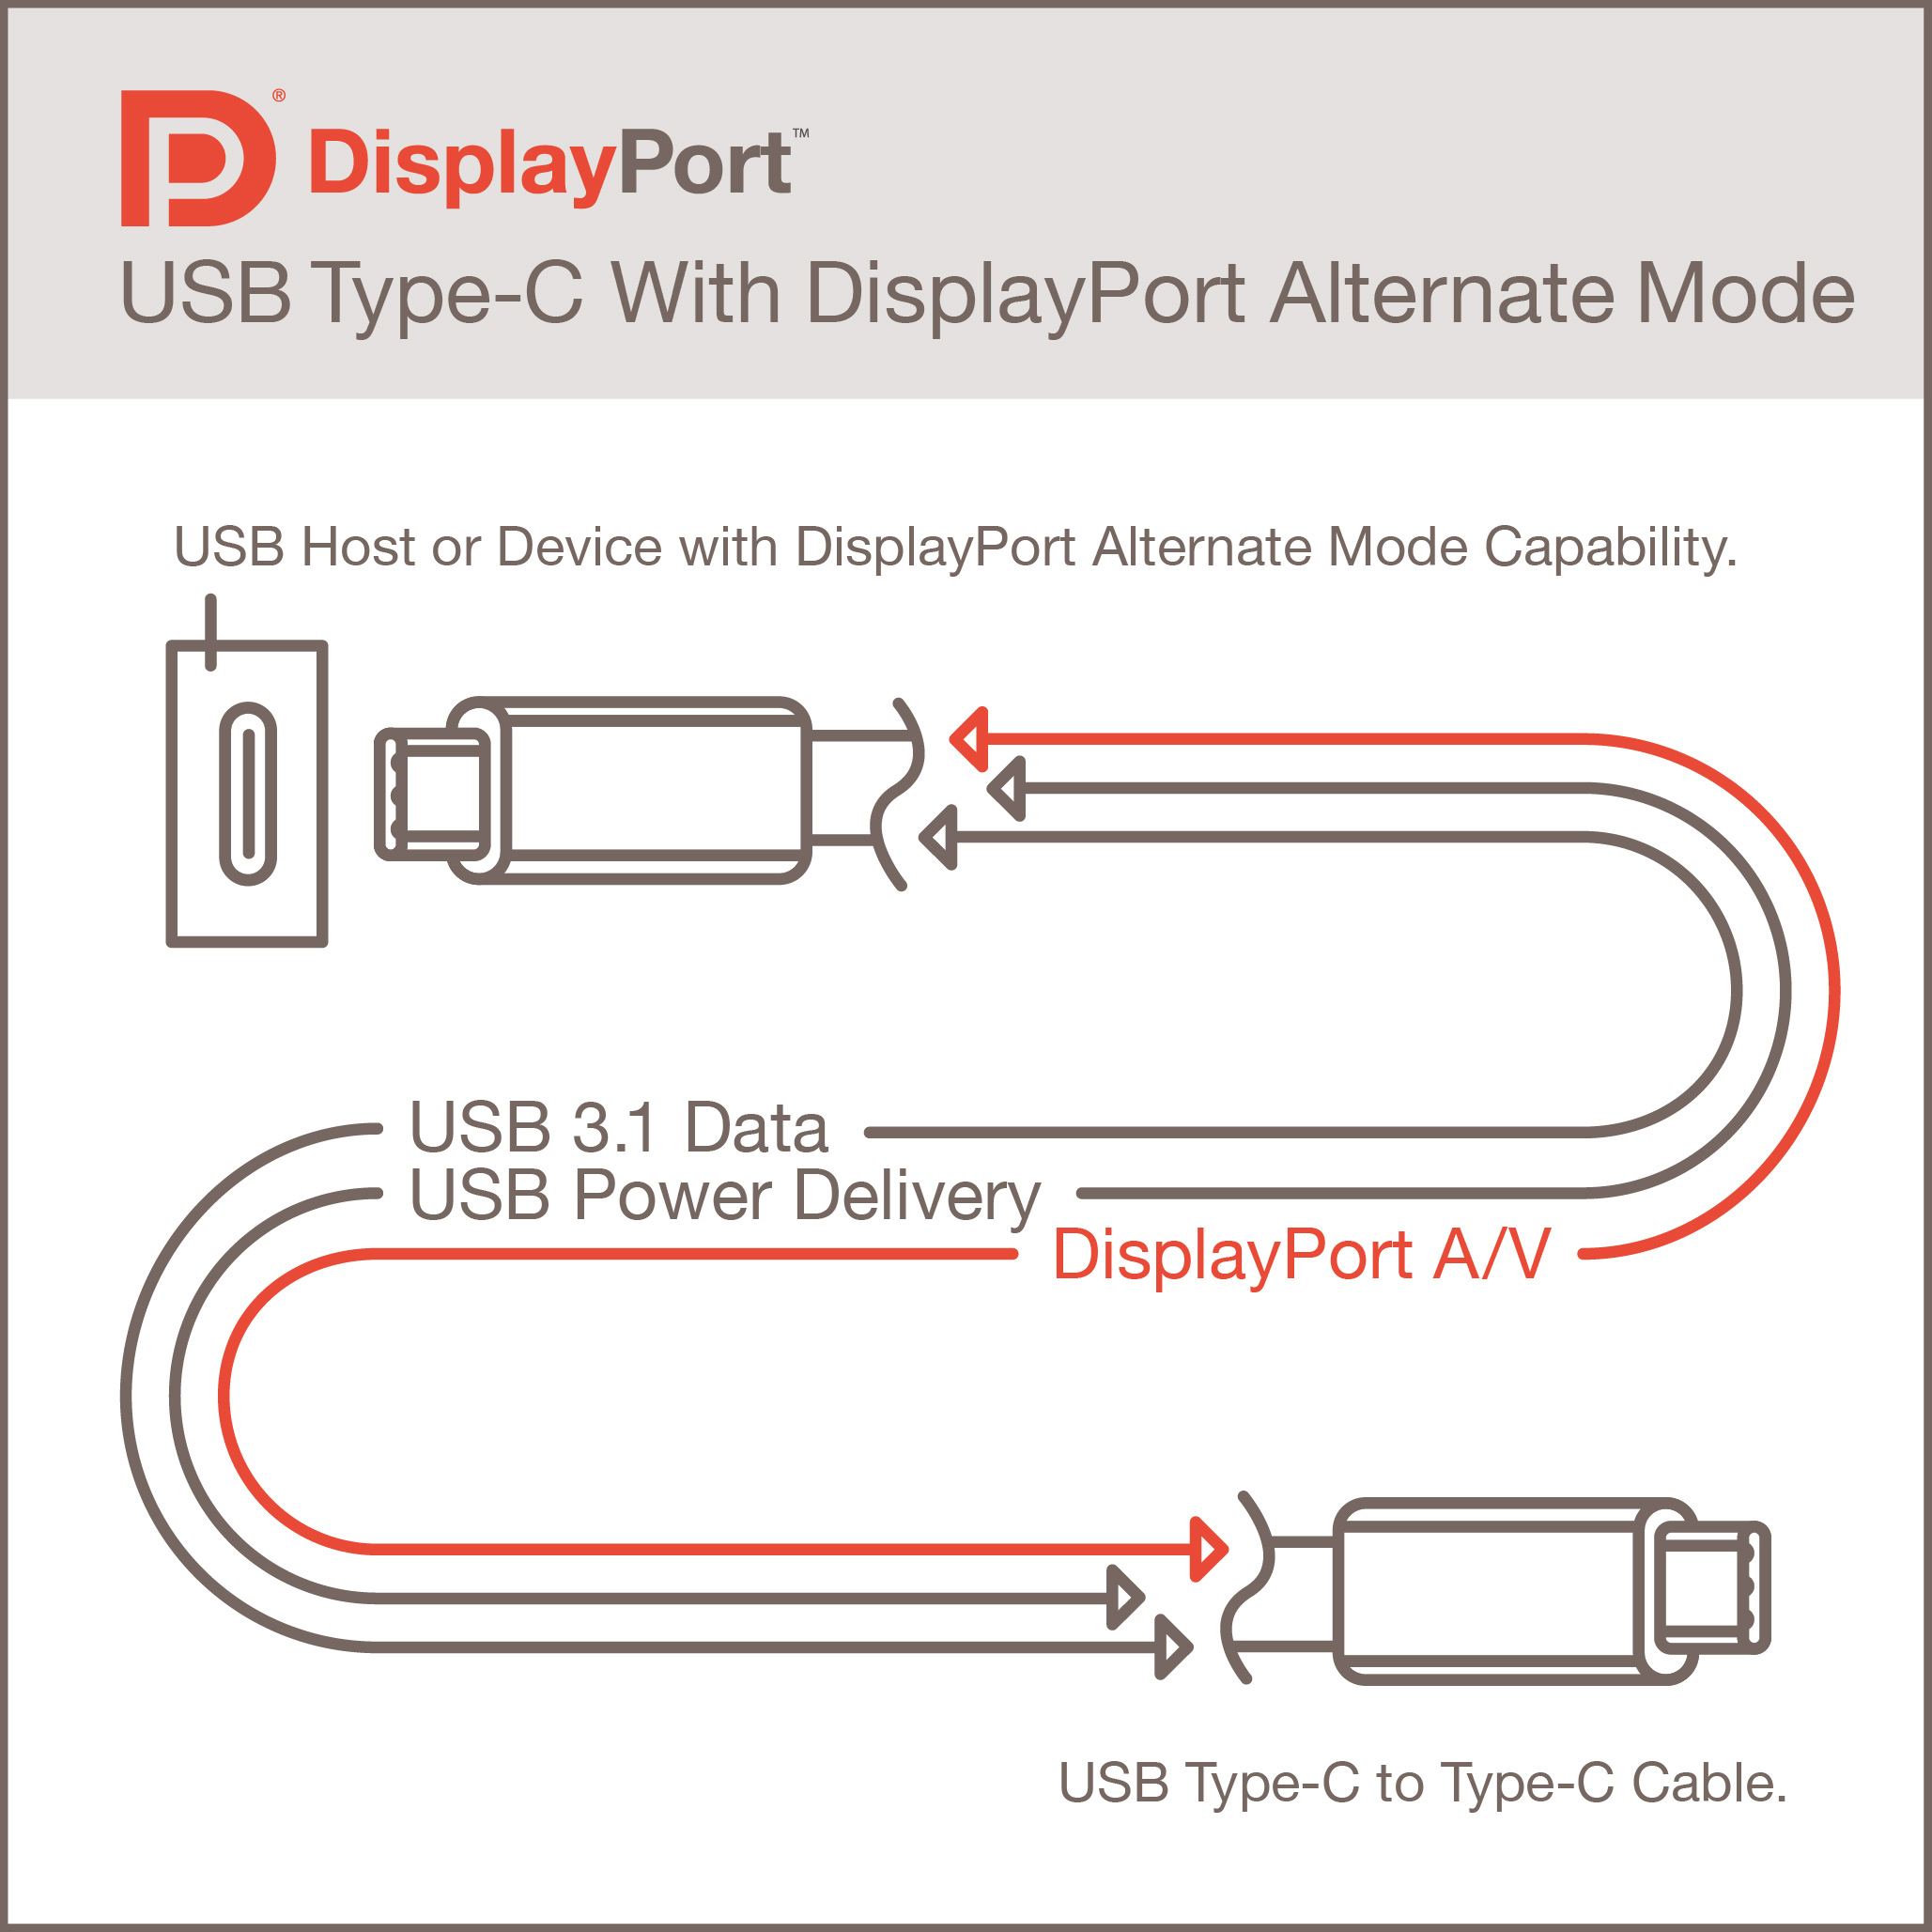 displayport-alternative-mode